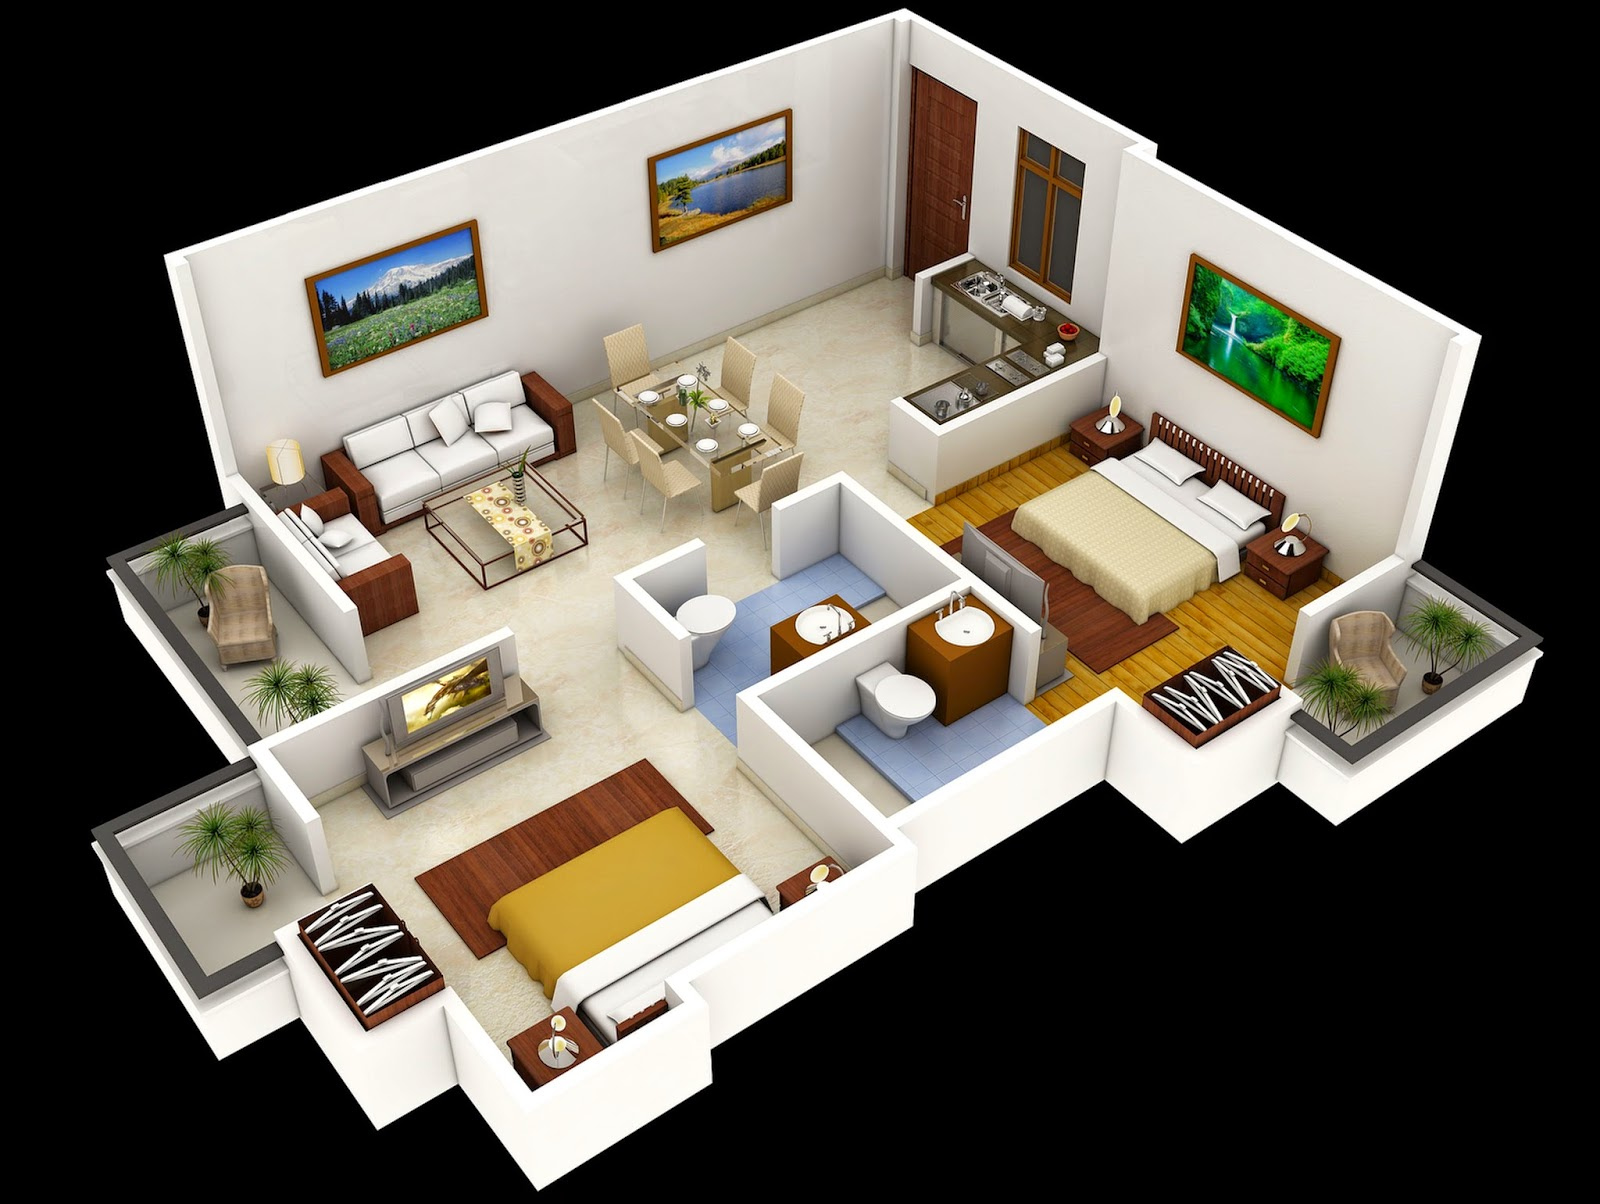 Two bedroom house interior design 2 bedroom interior design